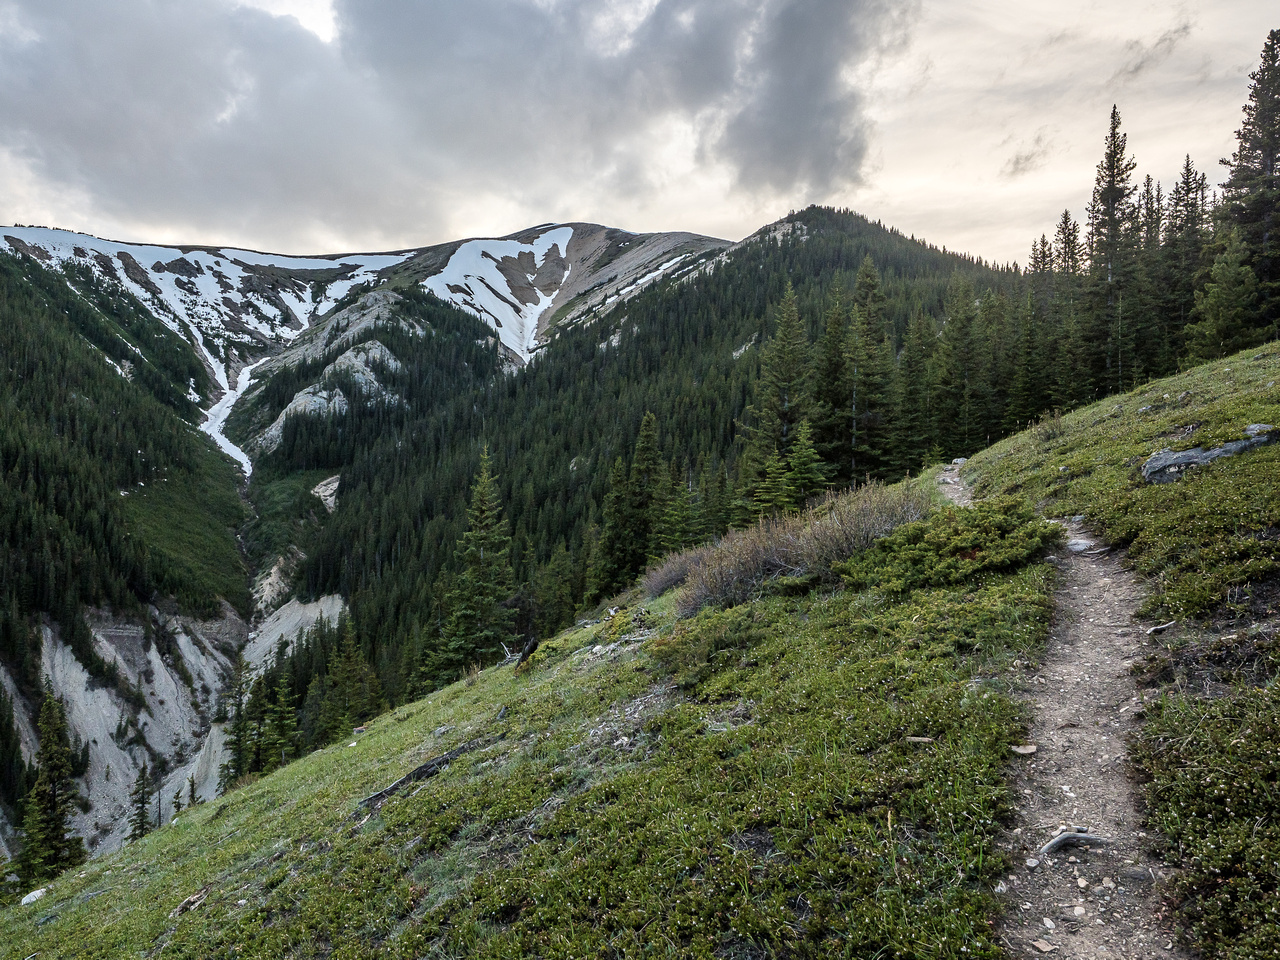 Looking back from the descent towards the summit. Two O'Clock Creek at lower left.